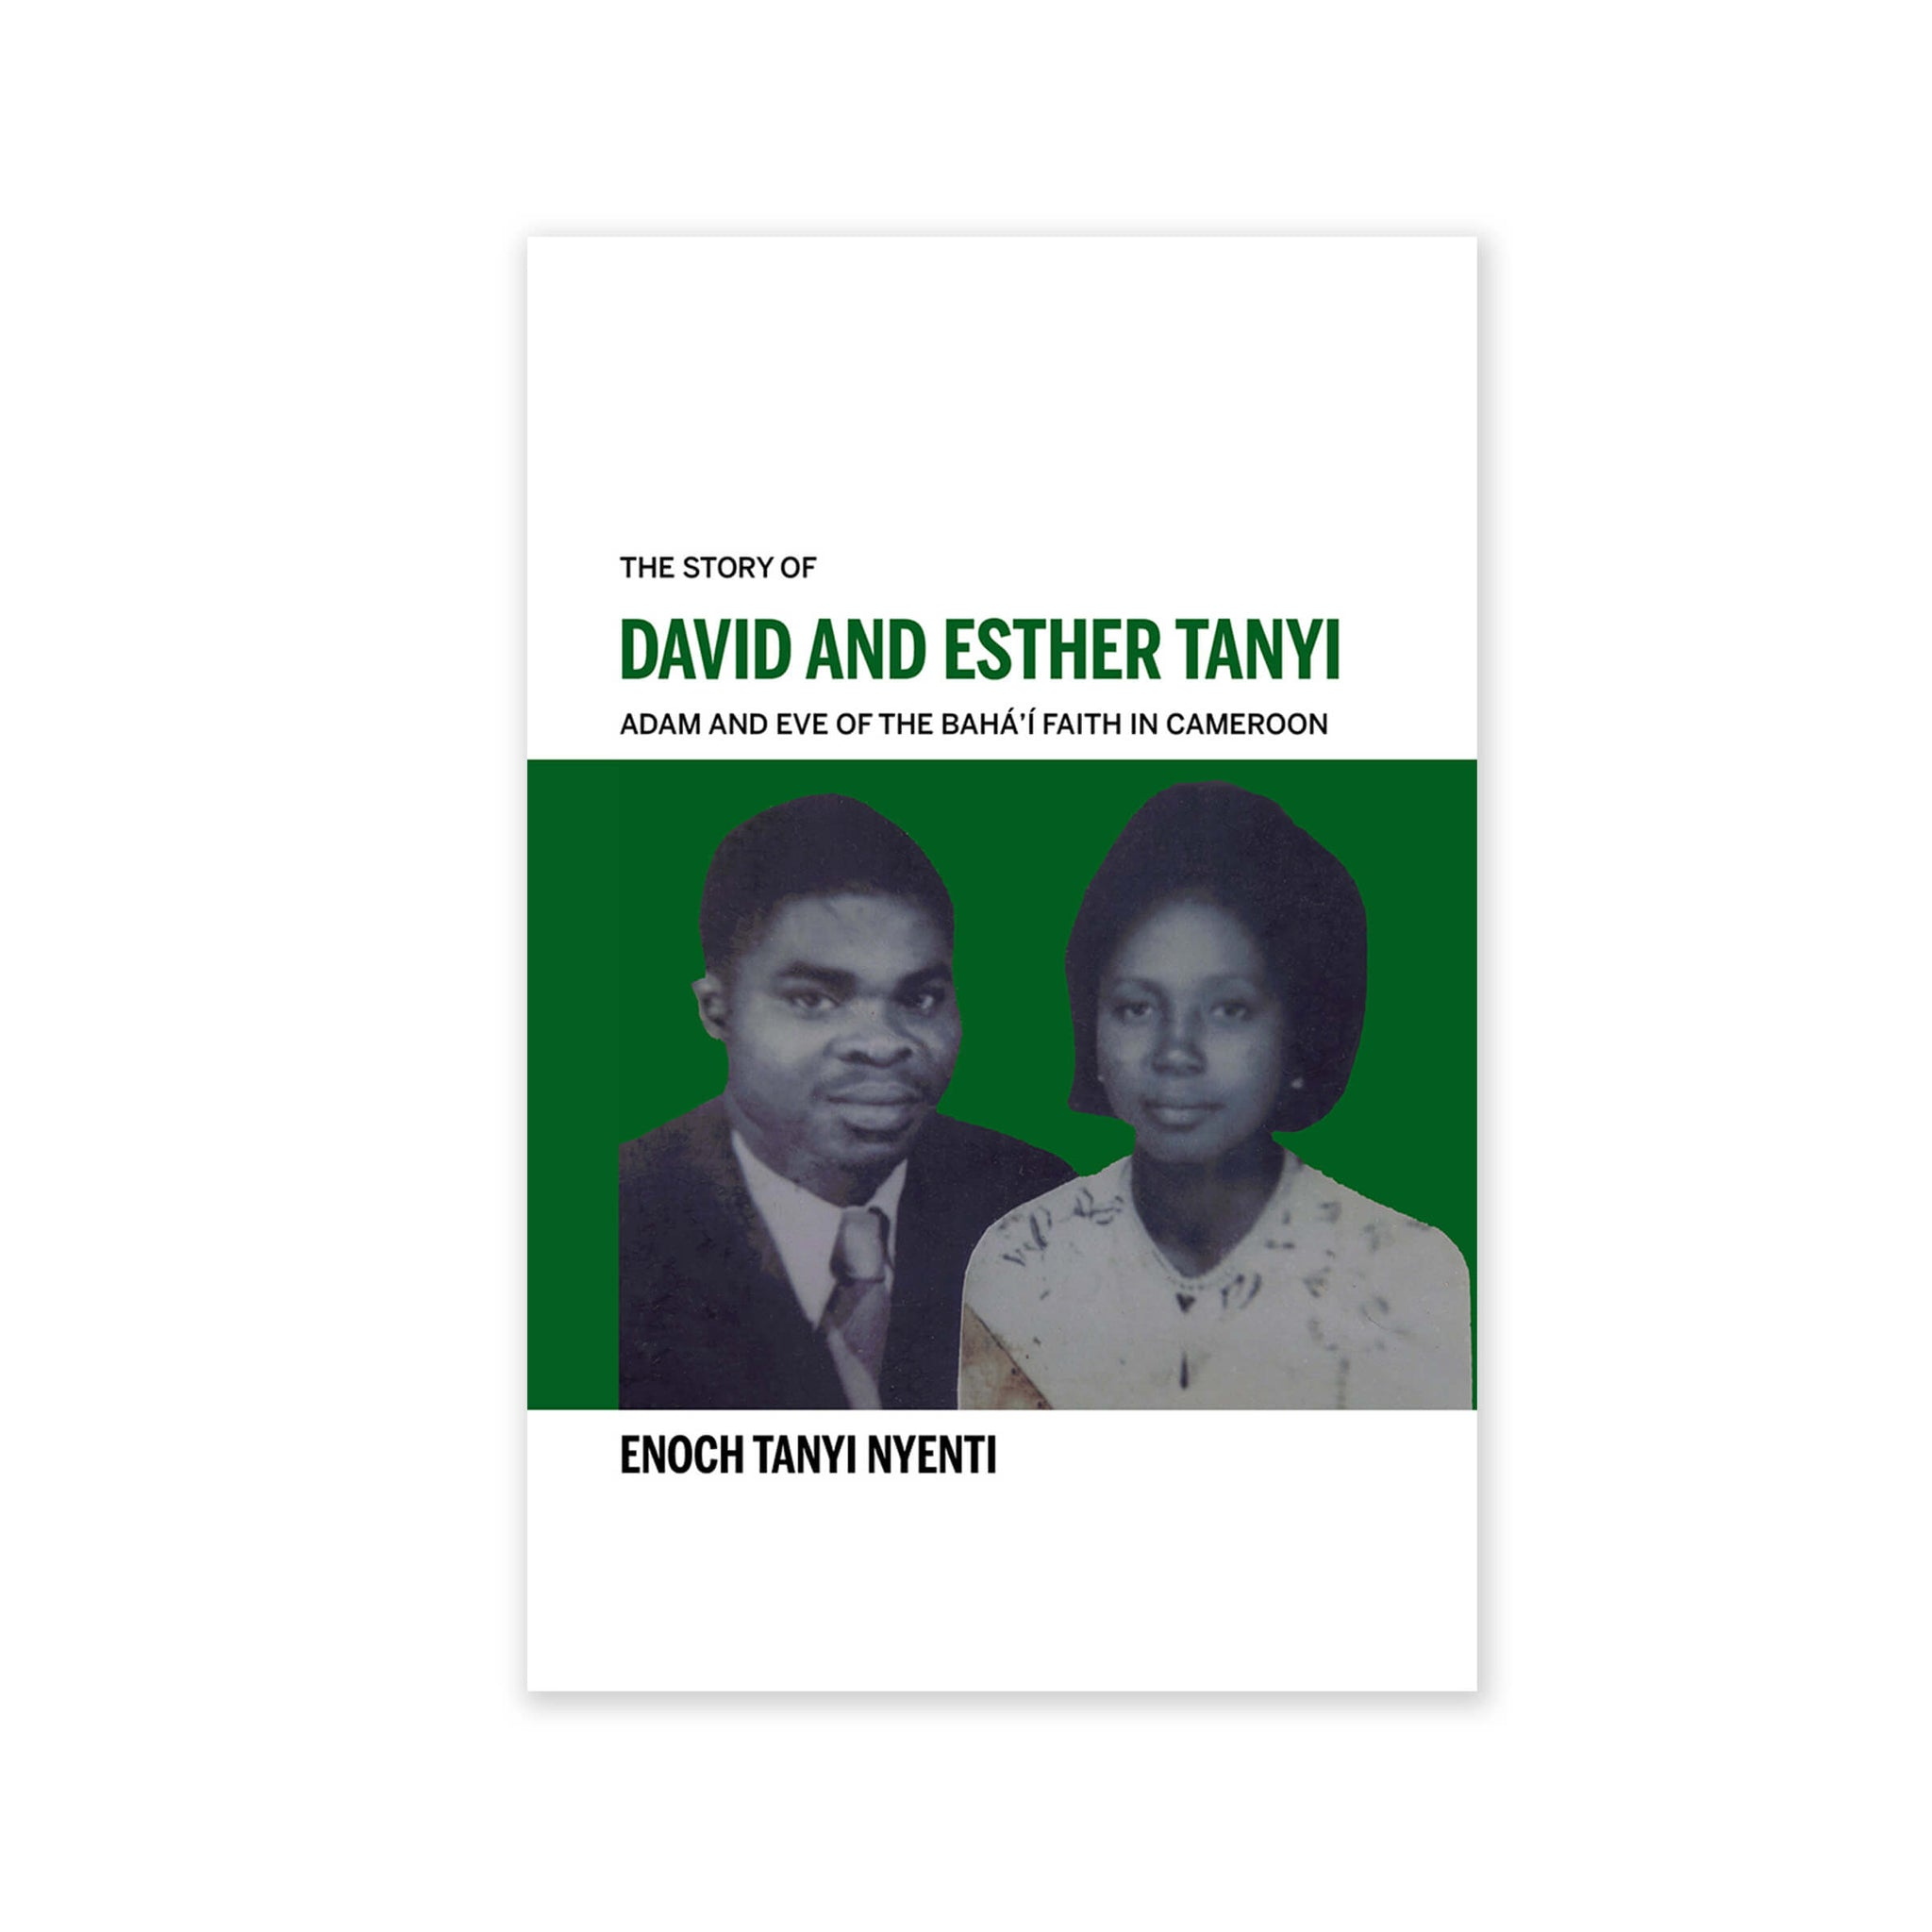 David and Esther Tanyi - 'Adam and Eve of the Baha'i Faith in Cameroon'